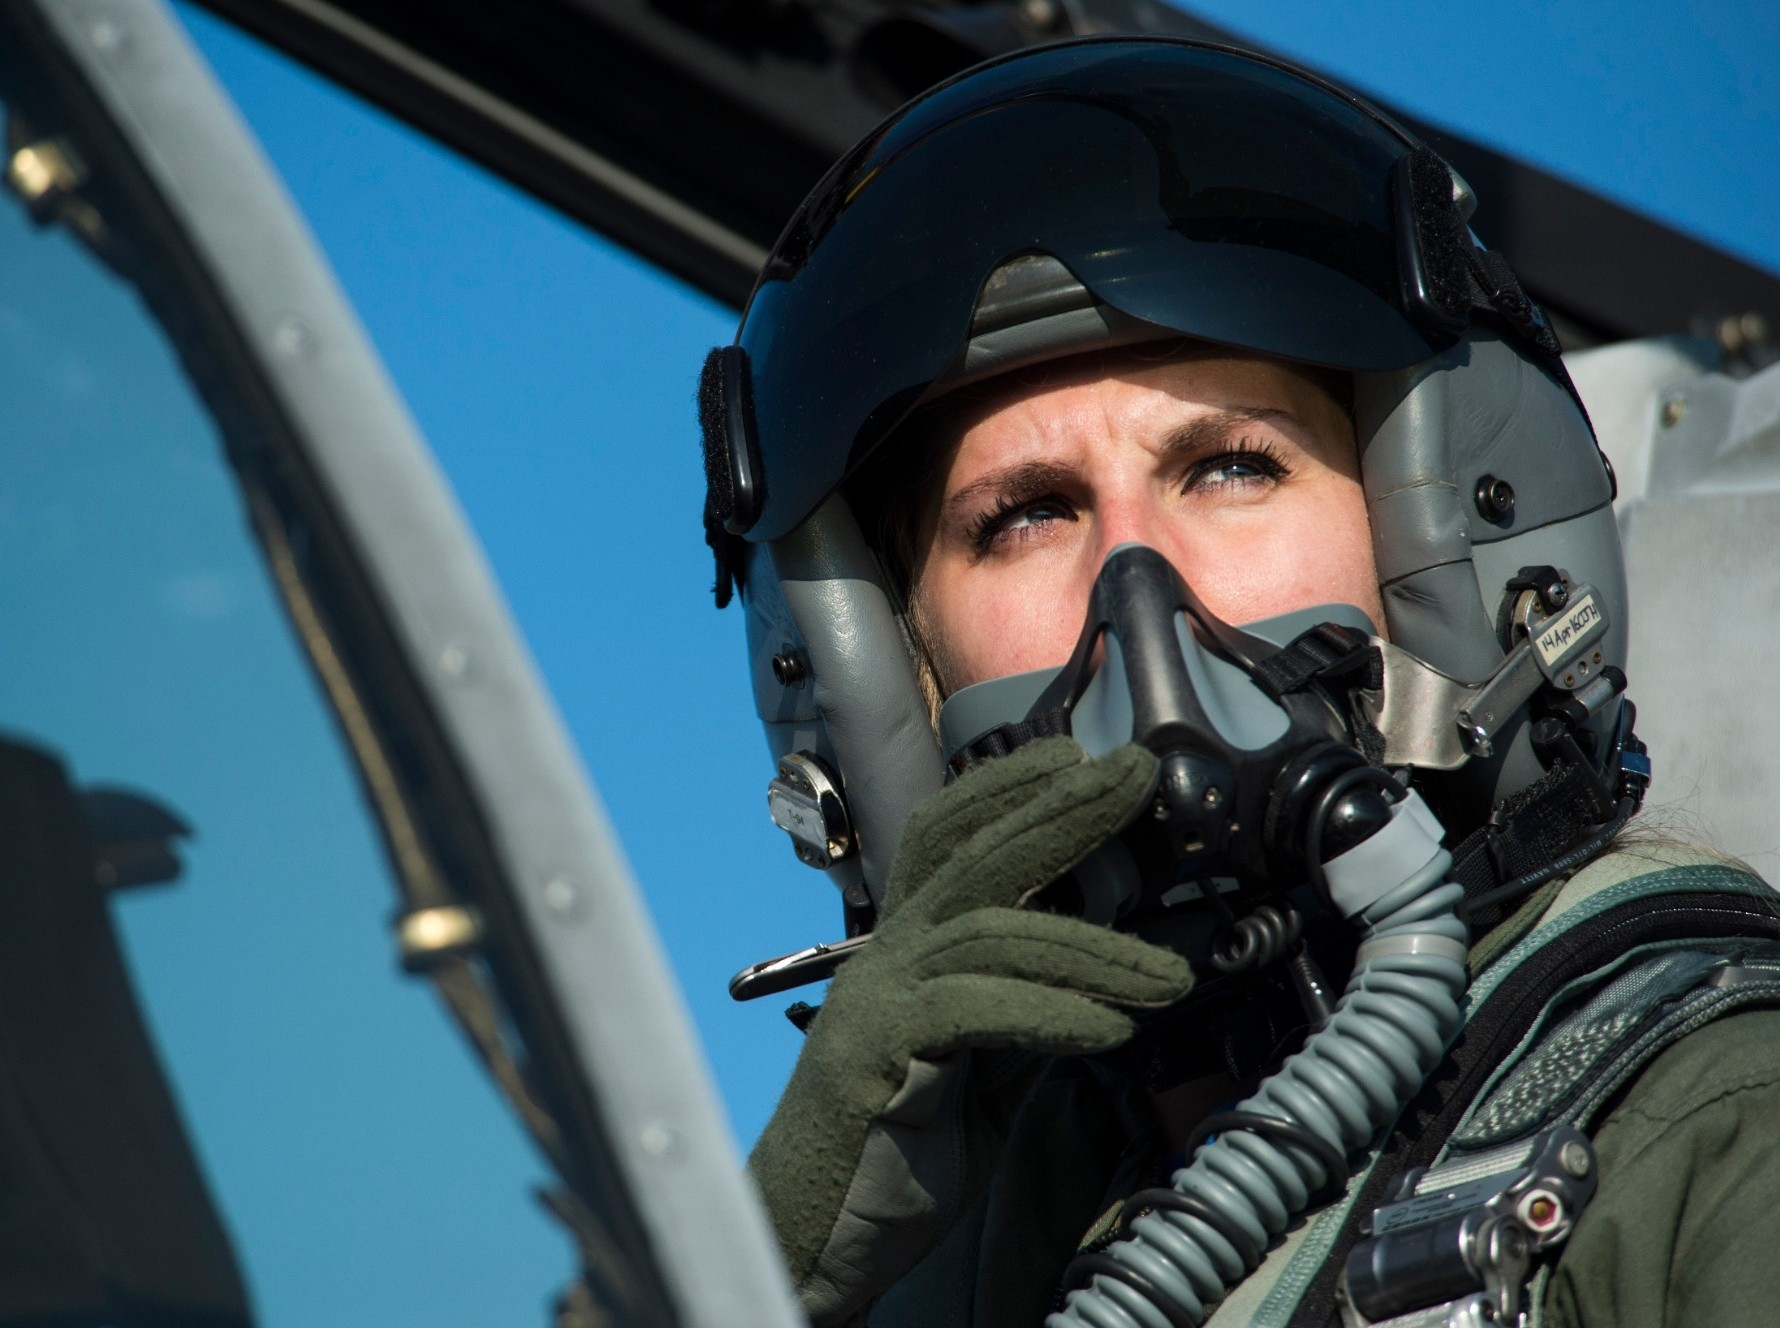 A 74th Expeditionary Fighter Squadron A-10 Thunderbolt II pilot in her aircraft during the squadron's deployment in support of Operation Atlantic Resolve at Graf Ignatievo, Bulgaria, March 18, 2016